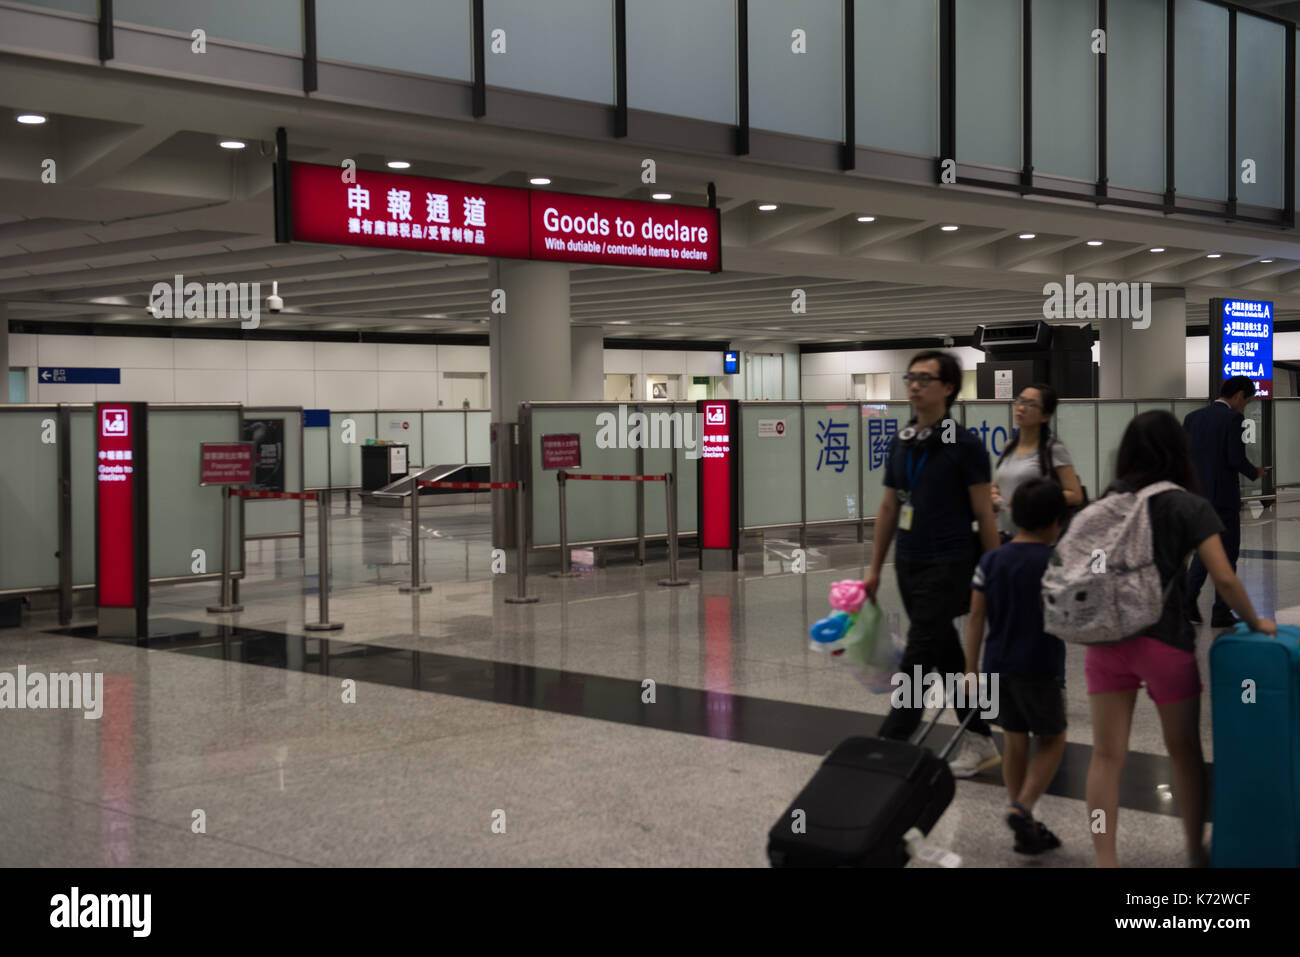 Hong Kong International Airport Check Lap Kok. Jayne Russell/Alamy Stock Photo Stock Photo